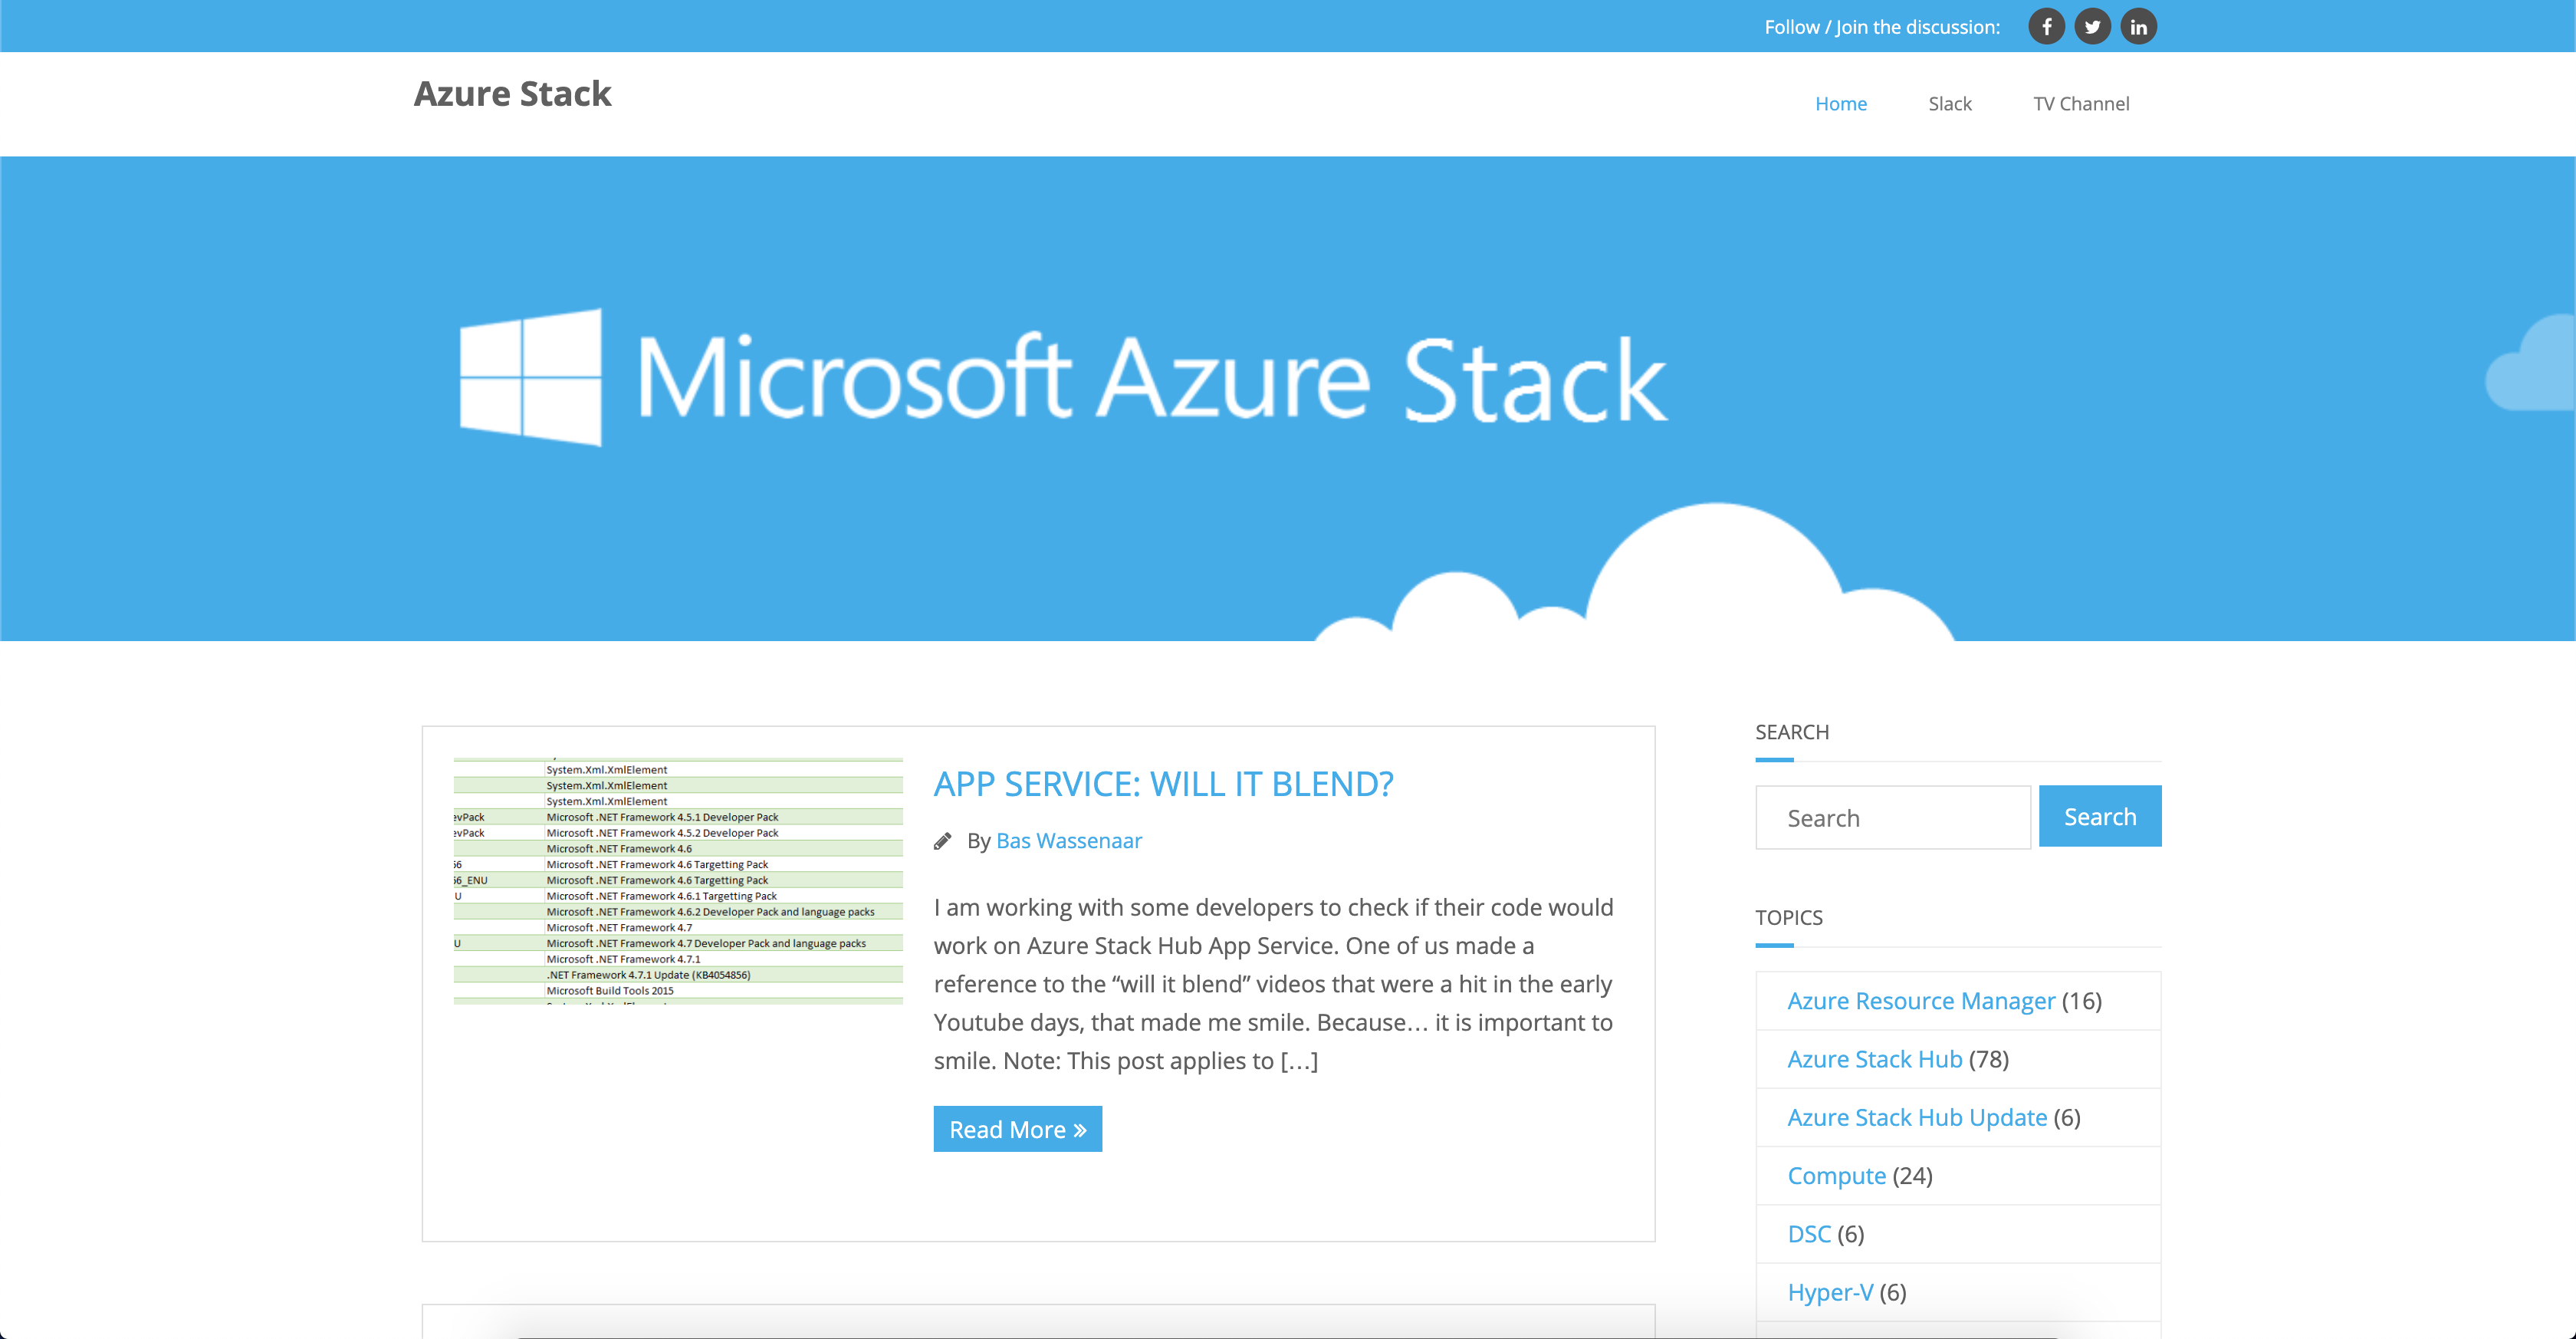 AzureStack Blog